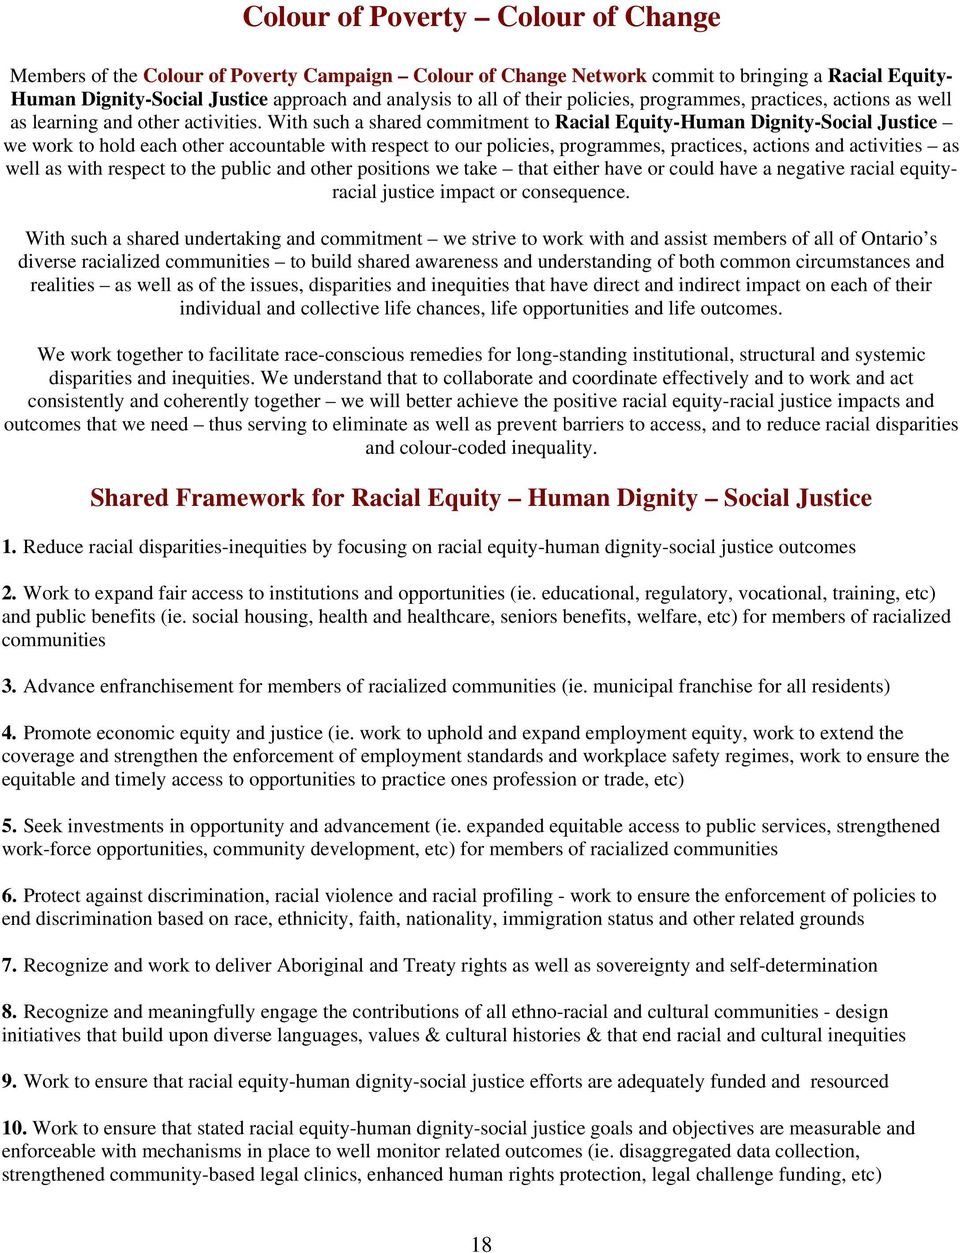 With such a shared commitment to Racial Equity-Human Dignity-Social Justice we work to hold each other accountable with respect to our policies, programmes, practices, actions and activities as well